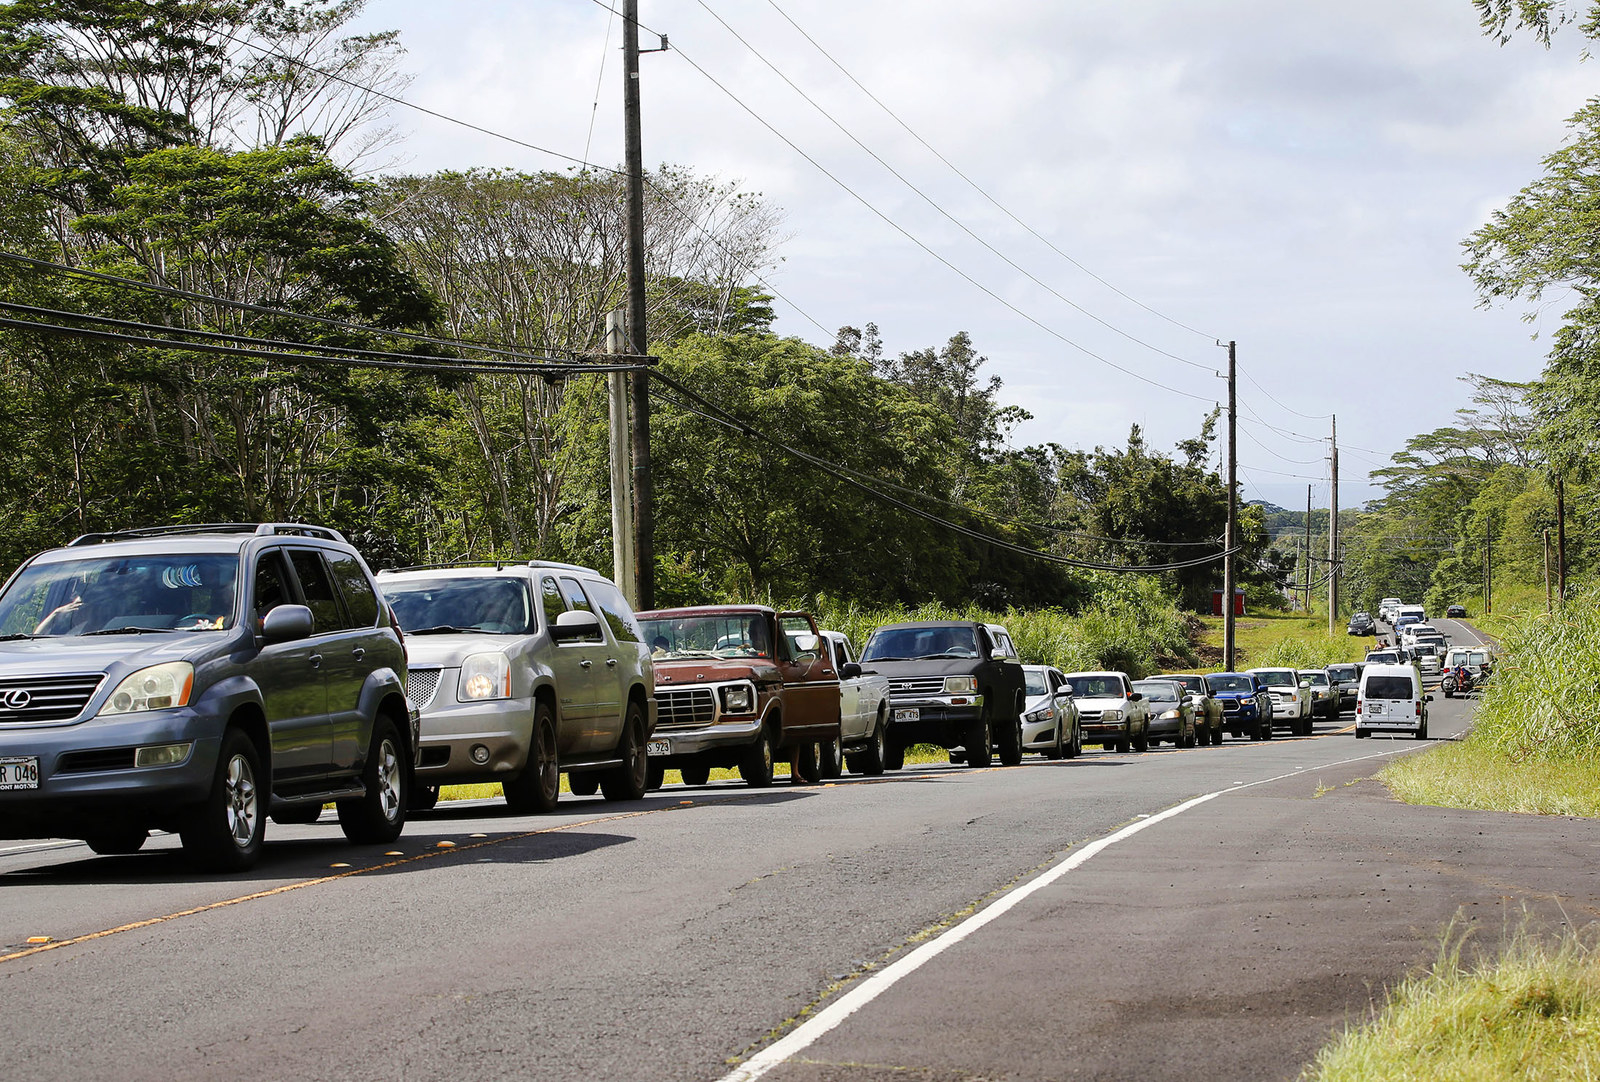 Residents of the Leilani Estates wait in a line to enter the subdivision to gather possessions from their homes.